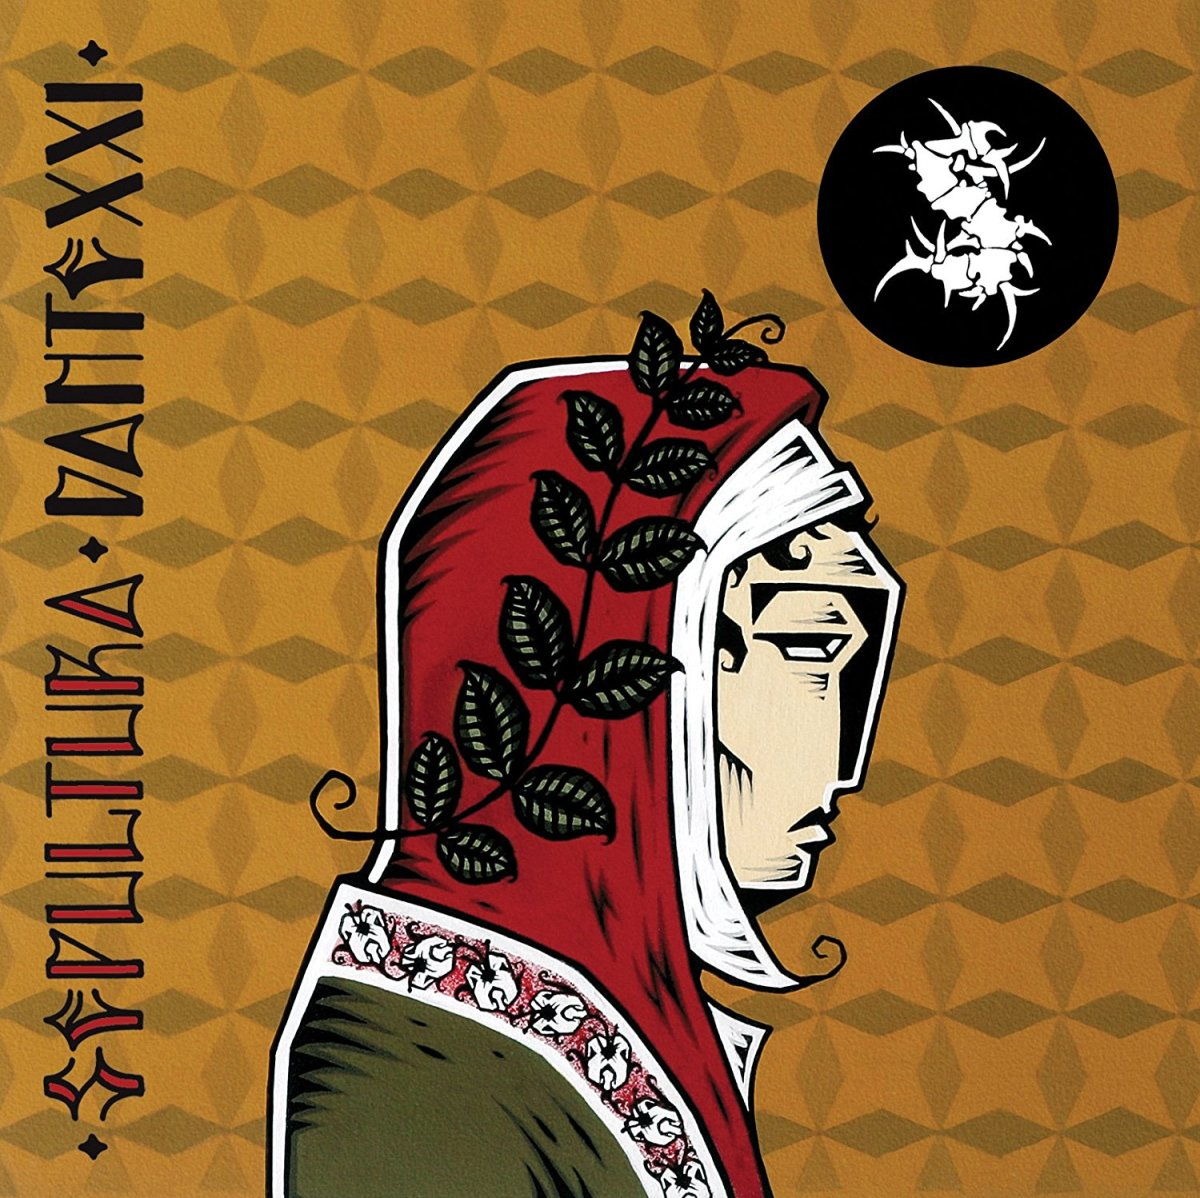 review-of-the-album-dante-21-by-brazilian-heavy-metal-band-sepultura